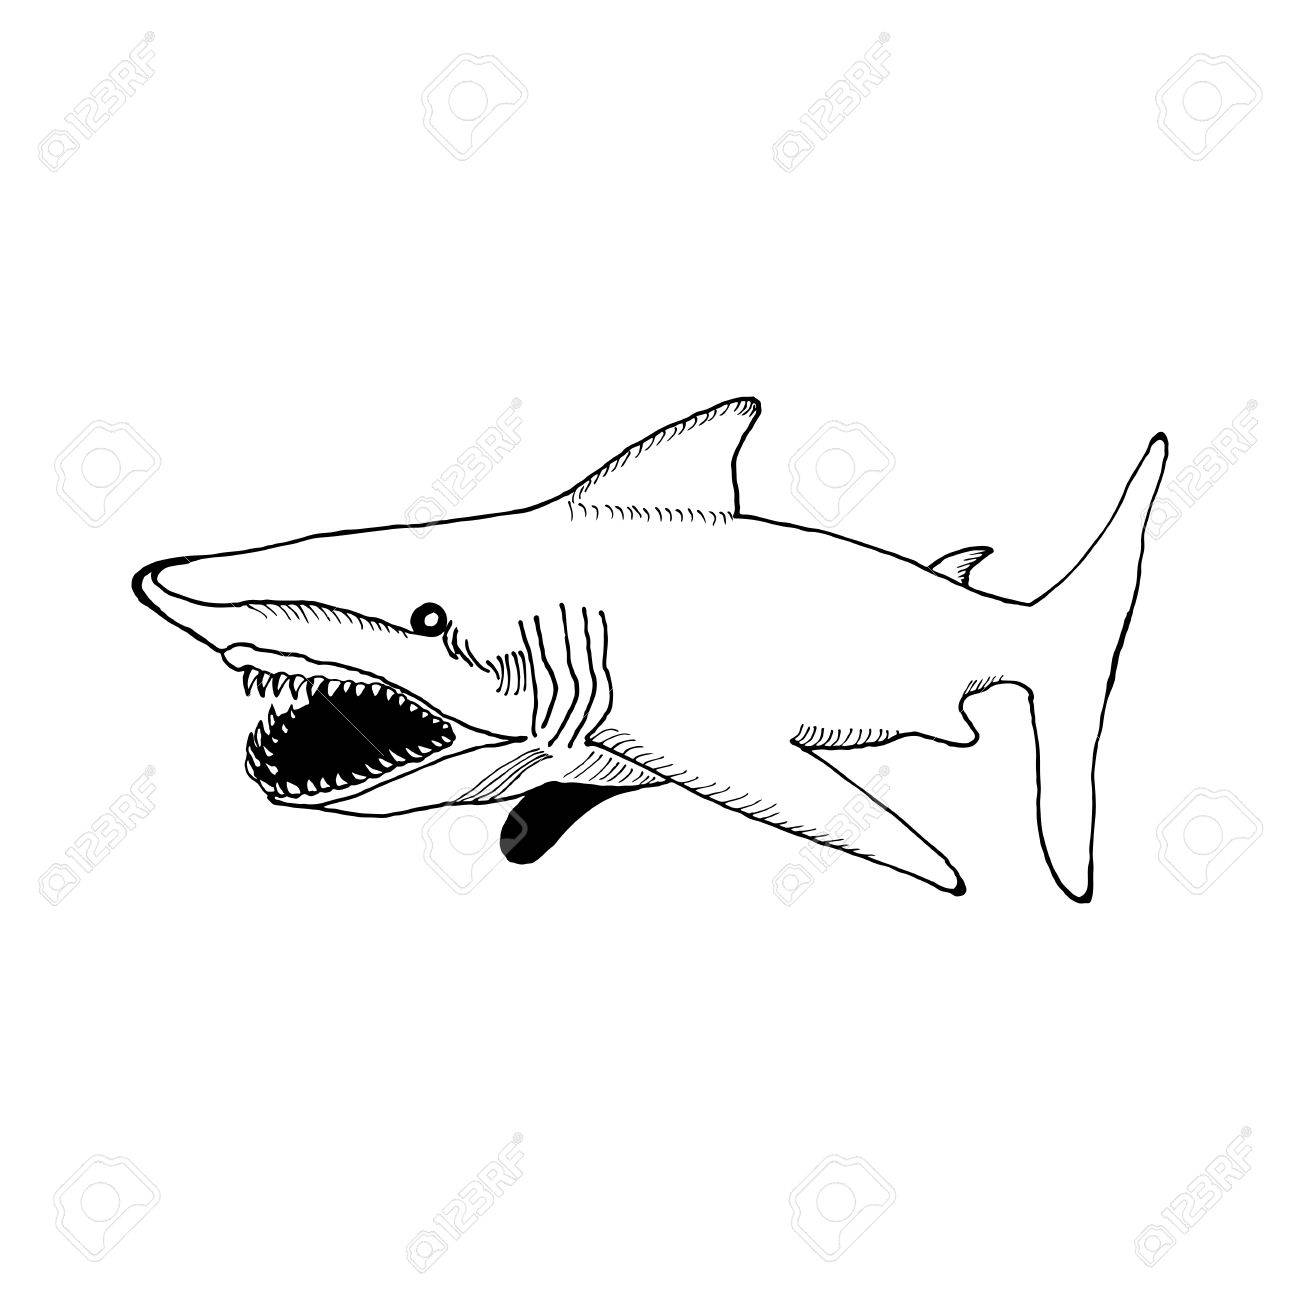 Hand Draw A Shark With An Open Mouth And Sharp Teeth In The Style ... for shark drawing open mouth  lp00lyp